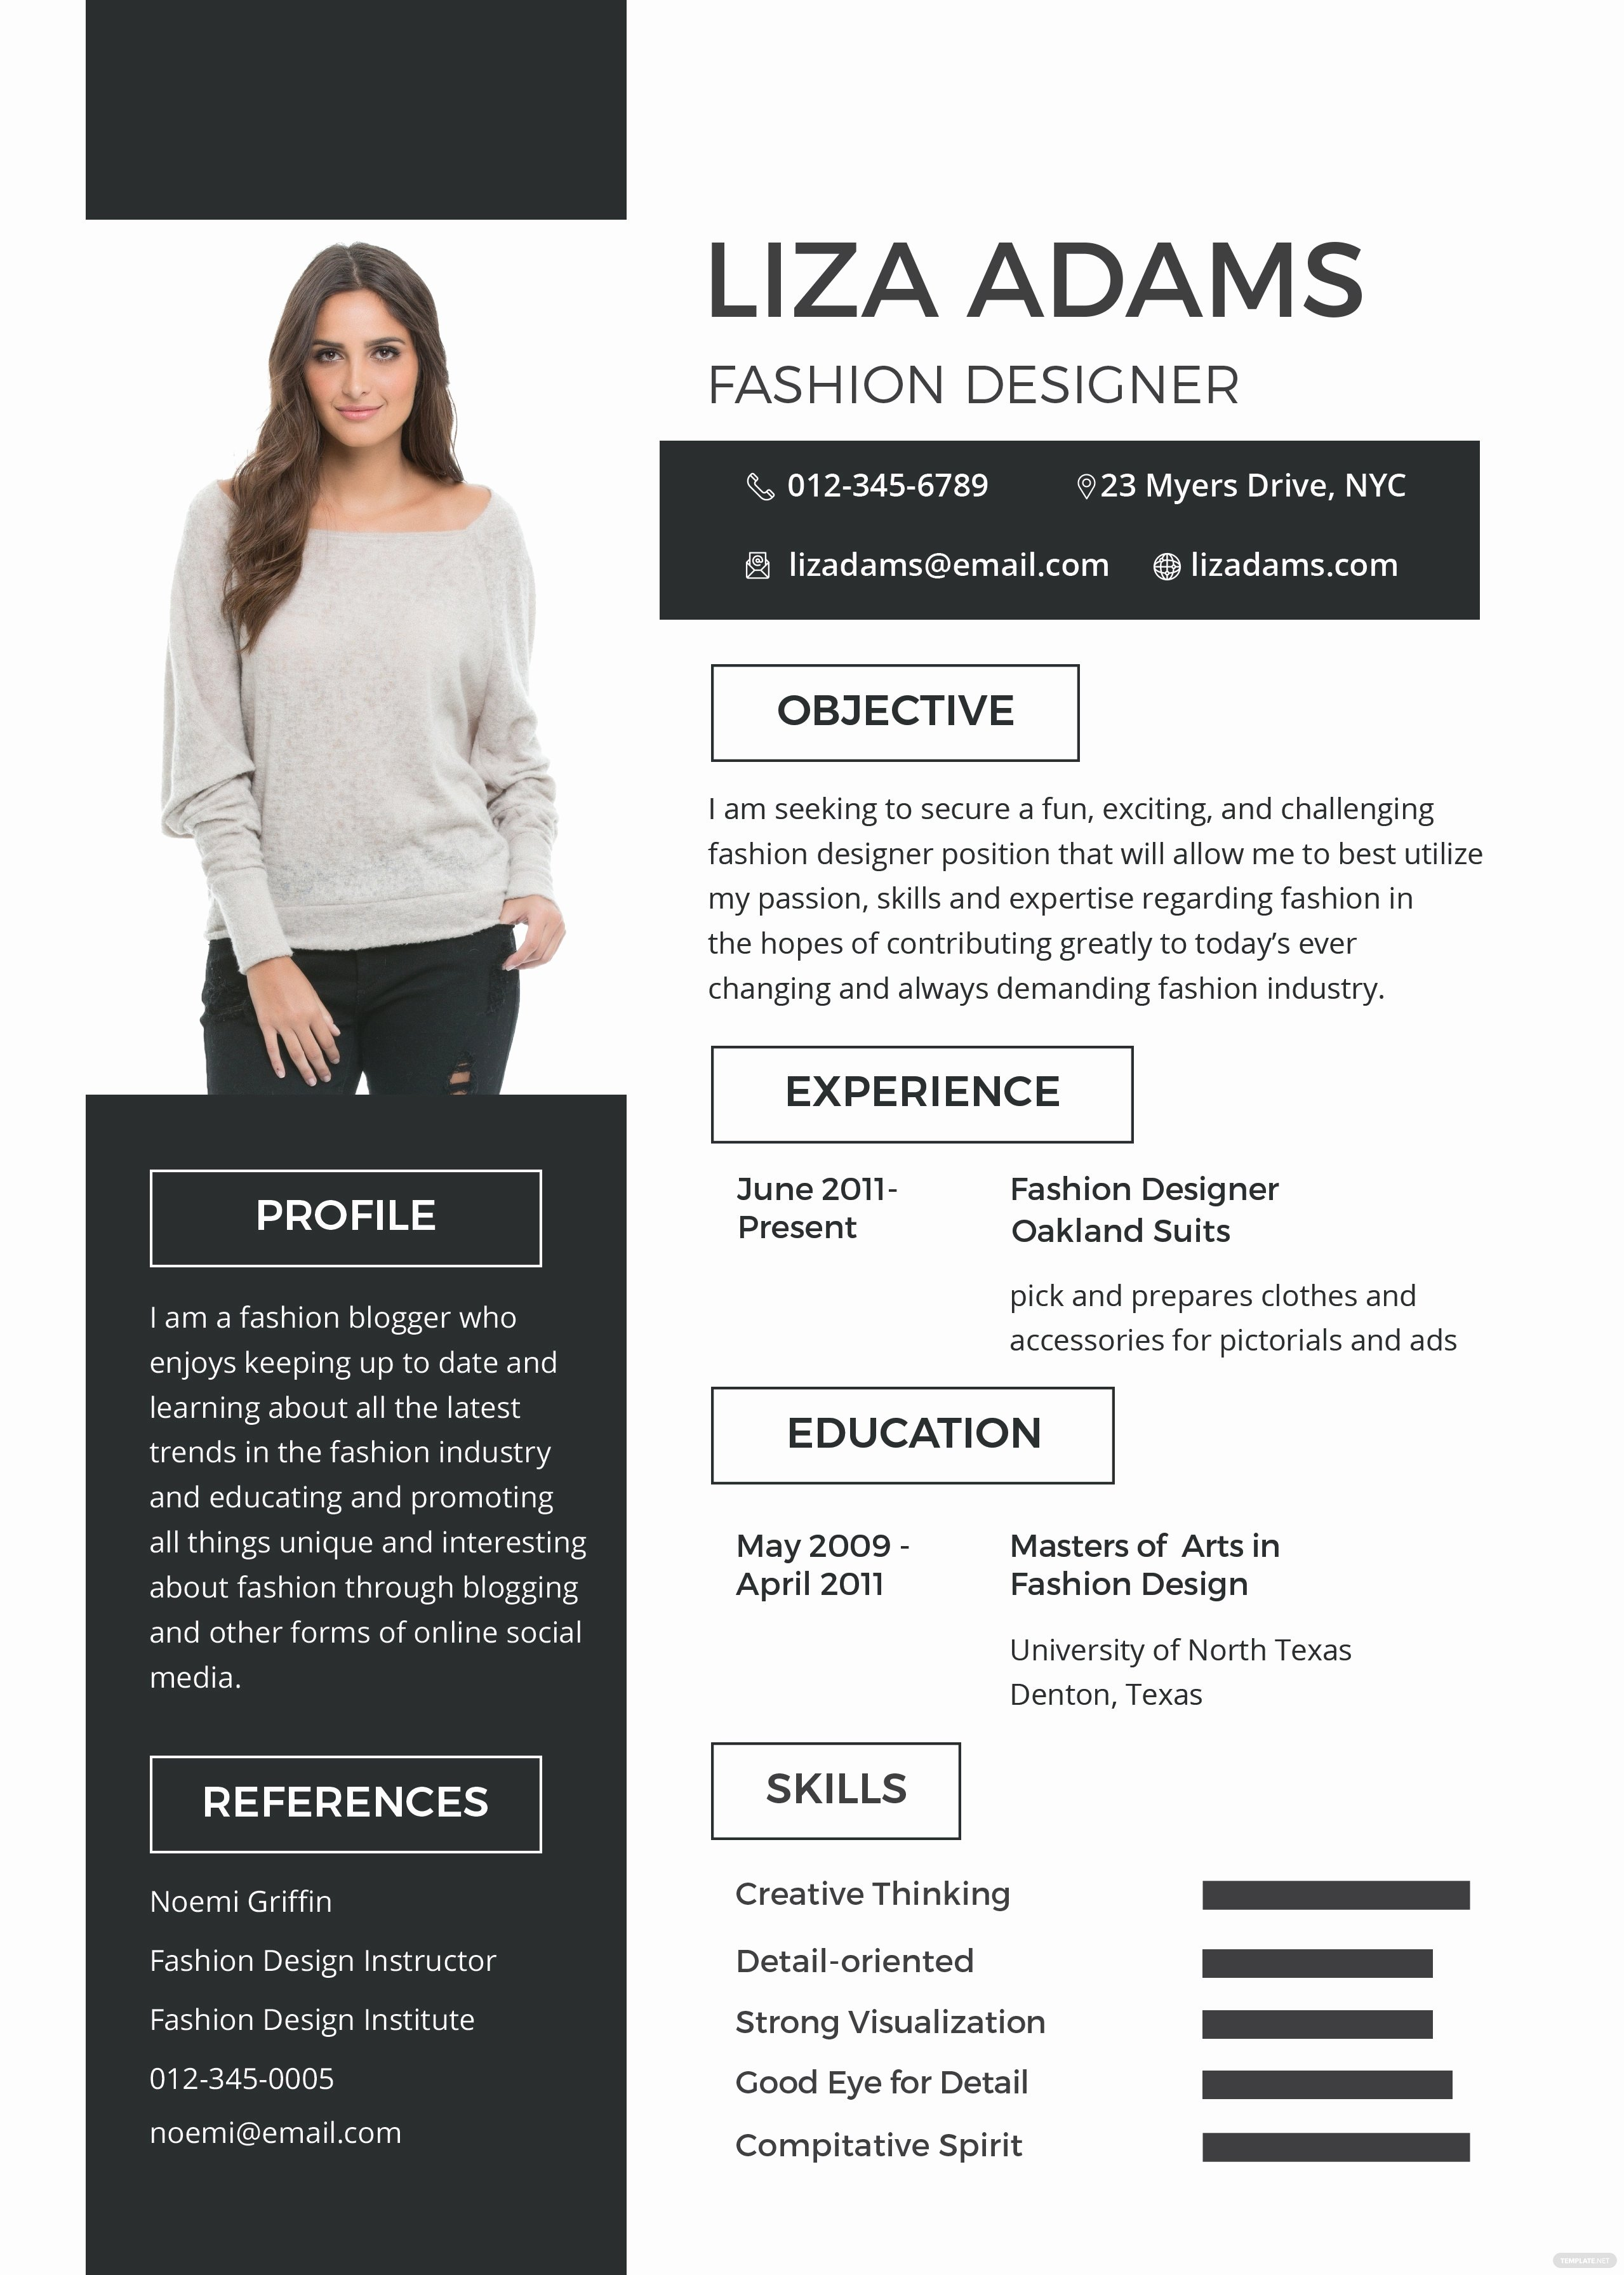 Makeup Artist Bio Sample Inspirational Free Fashion Designer Resume and Cv Template In Psd Ms